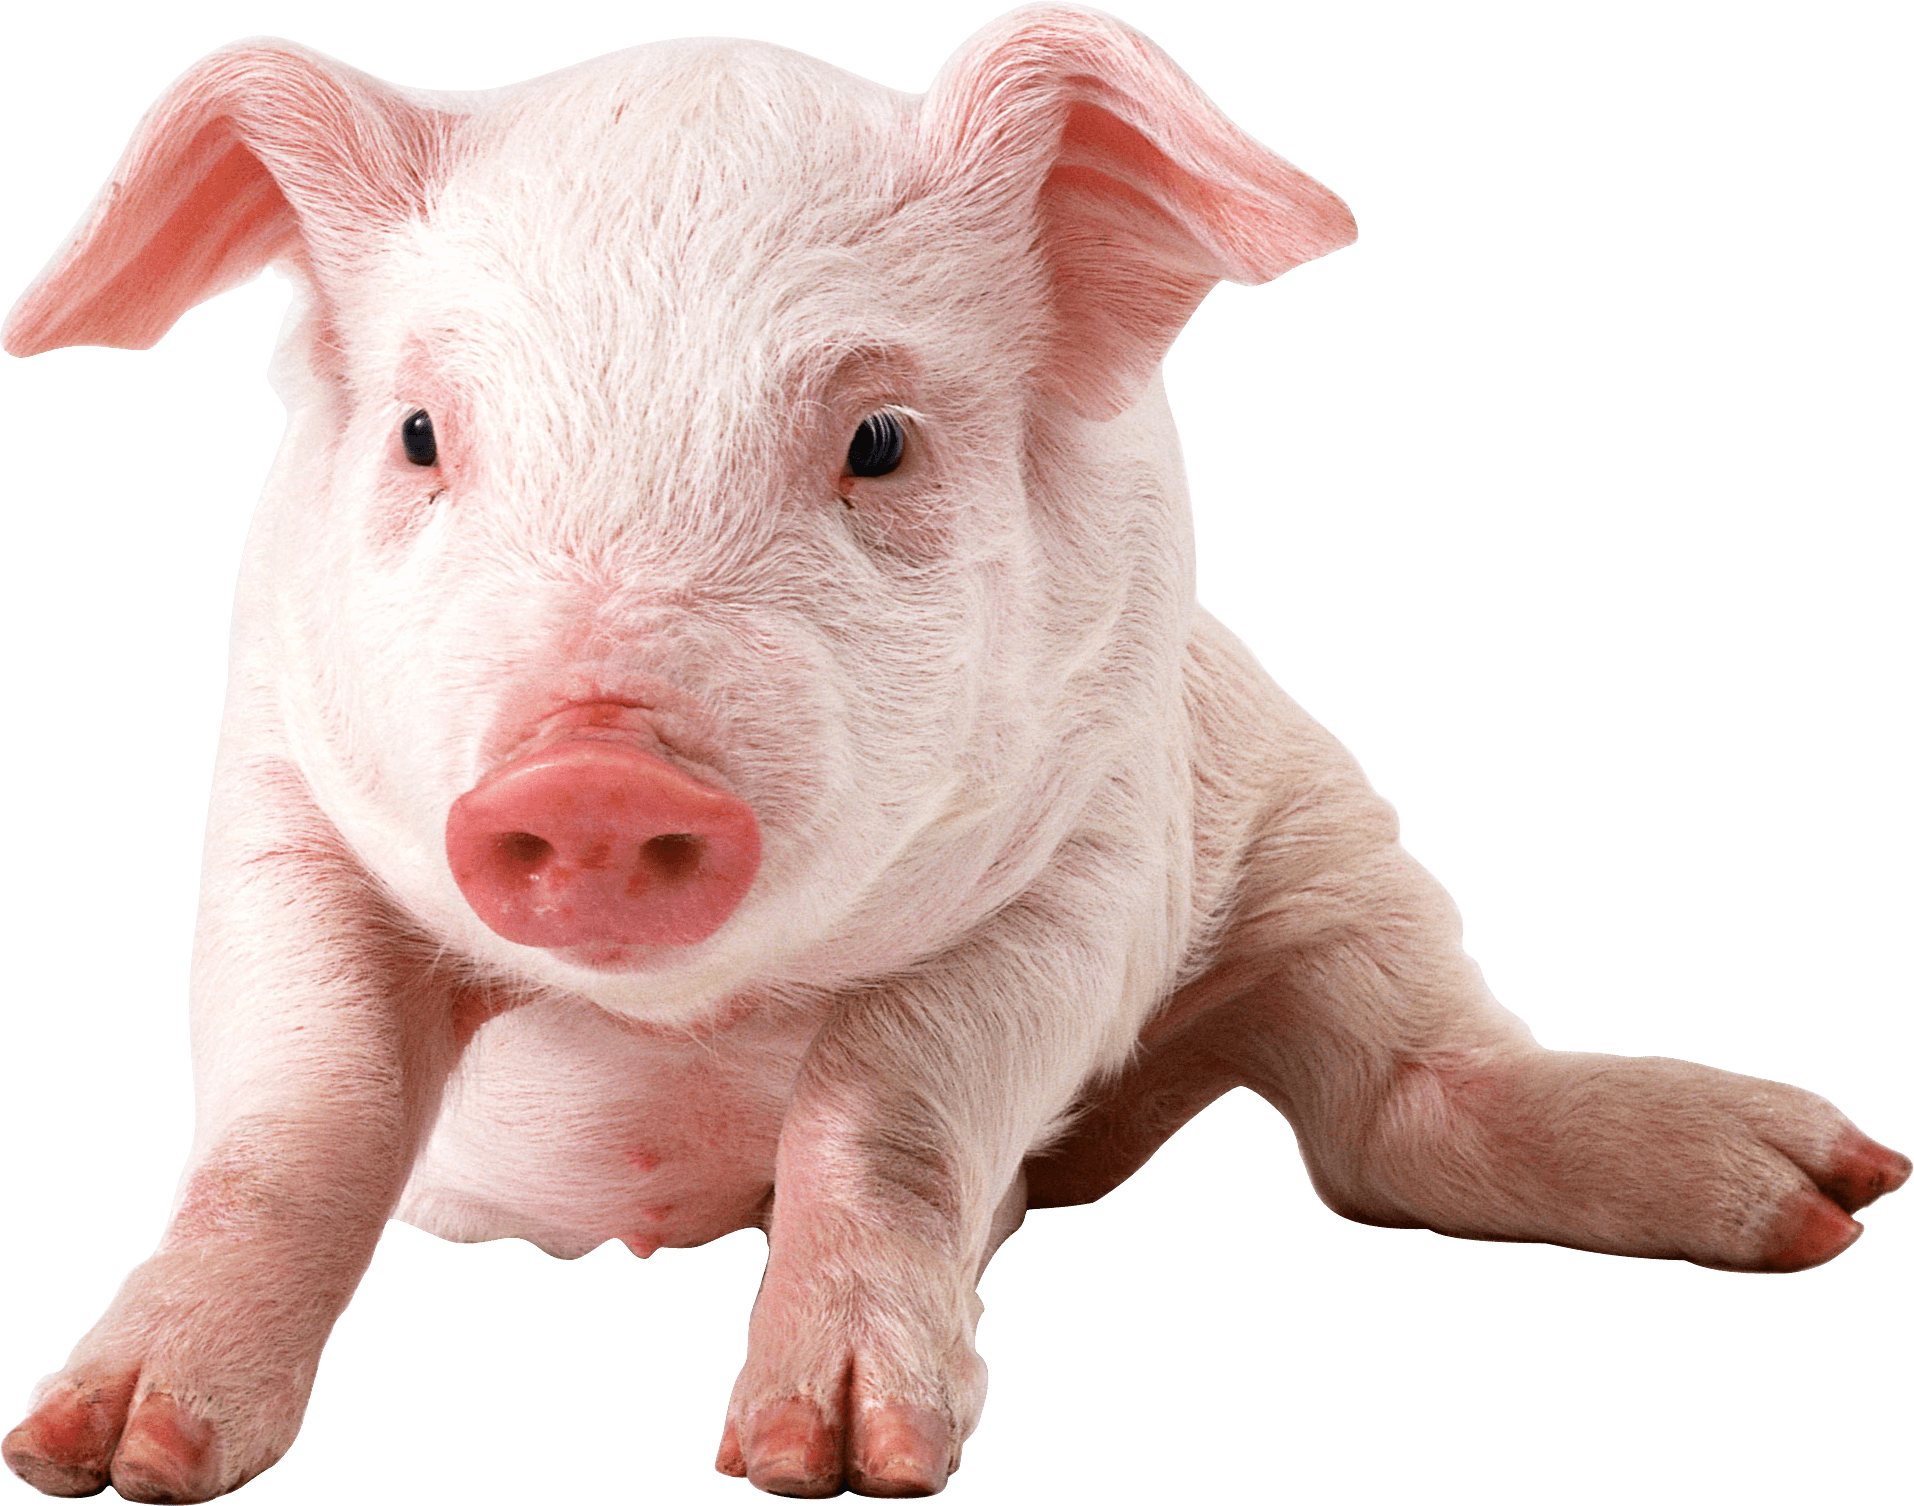 Pigs clipart transparent background. Baby pig sitting png